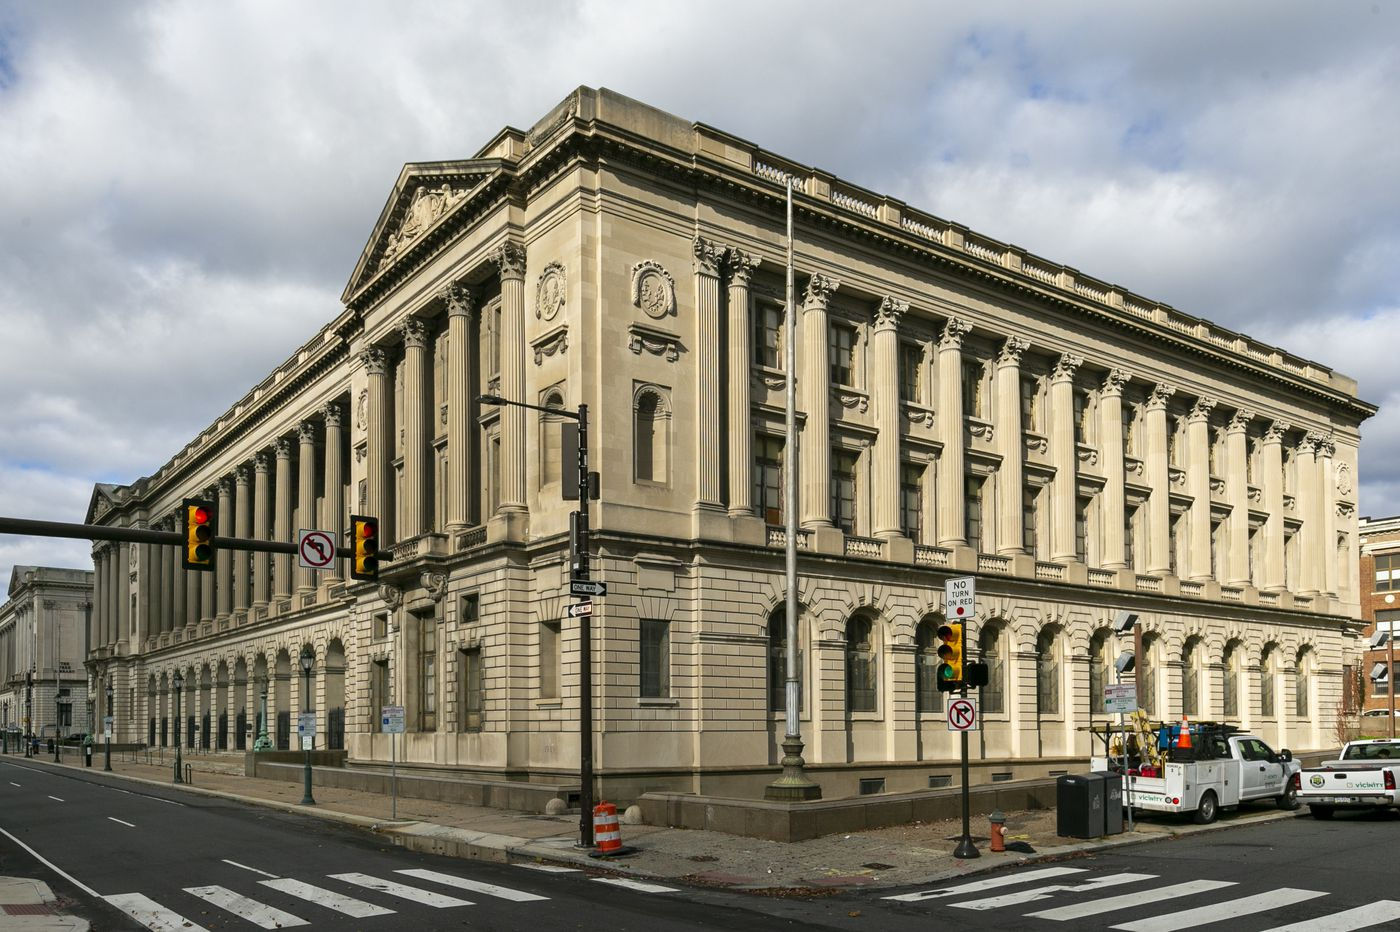 Philly undoes deal with developer Peebles to revamp historic Family Court building into luxury hotel